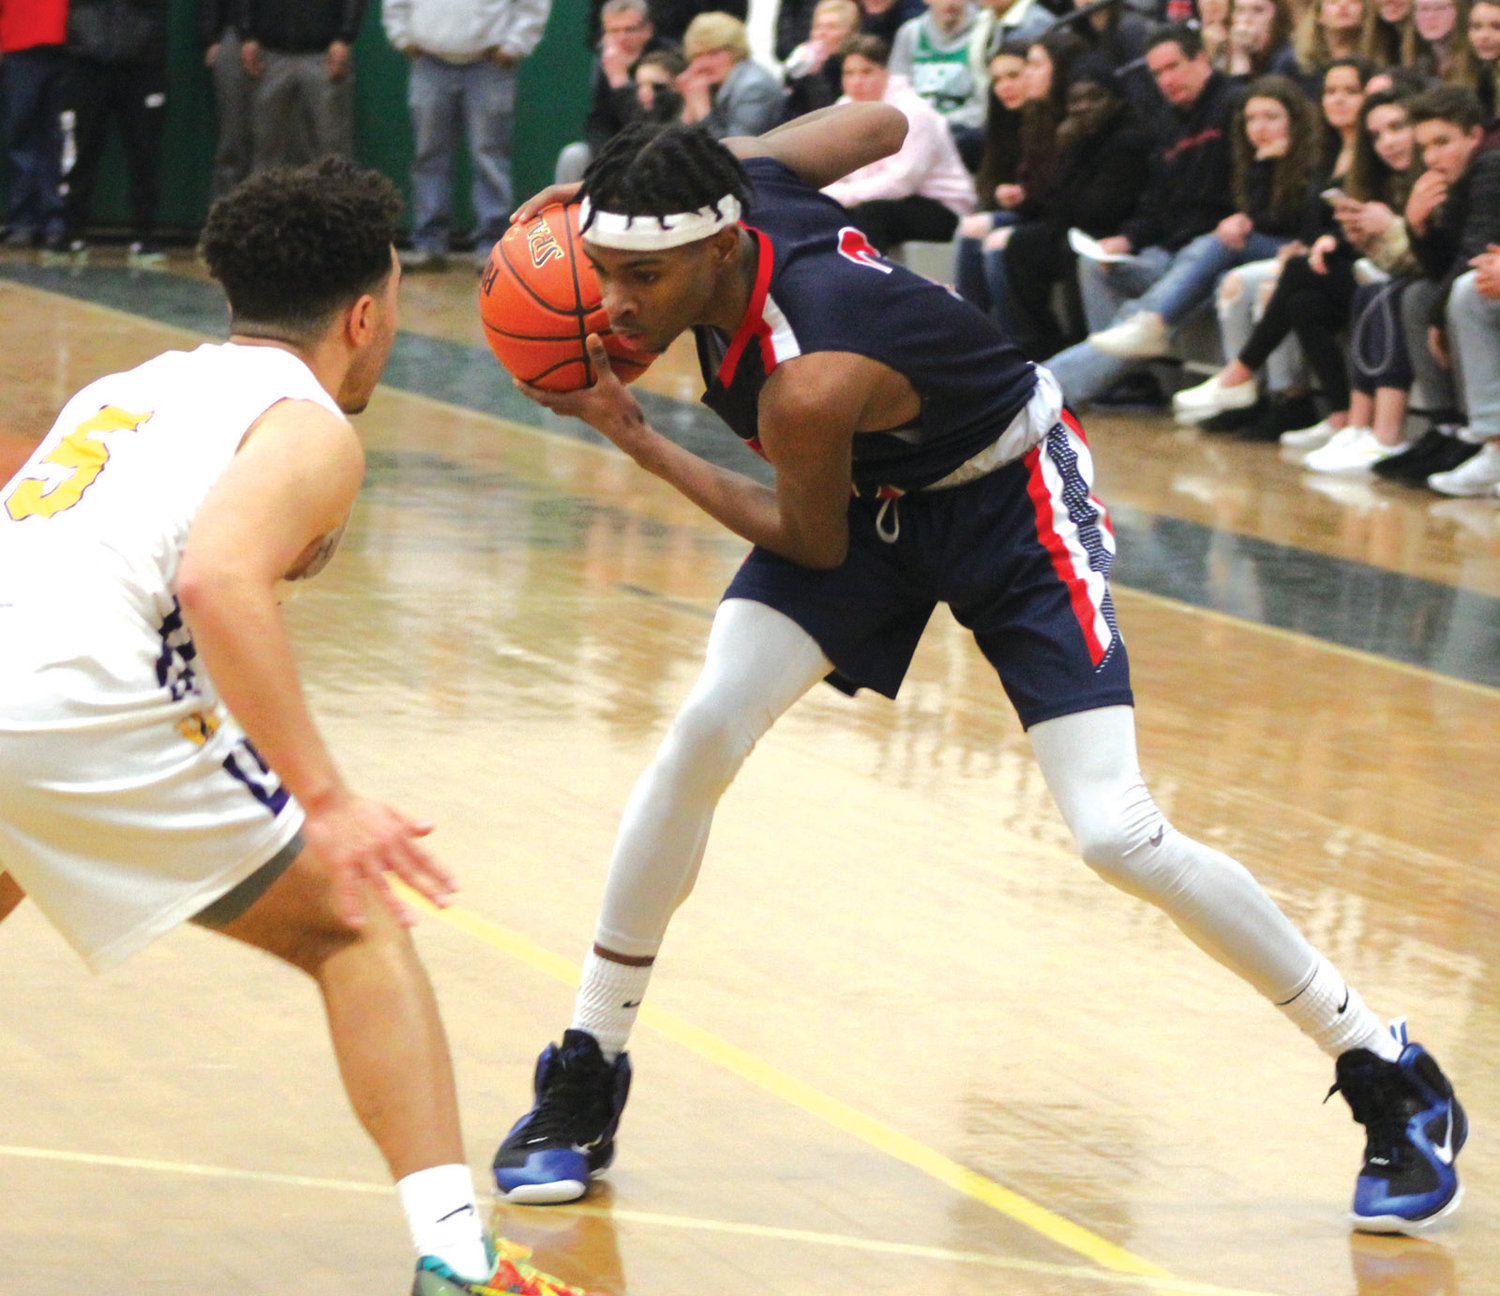 IN THE PAINT: Toll Gate's Kavi Simpson works past a defender during the first round of the open state tournament against Wheeler at Cranston East last week.